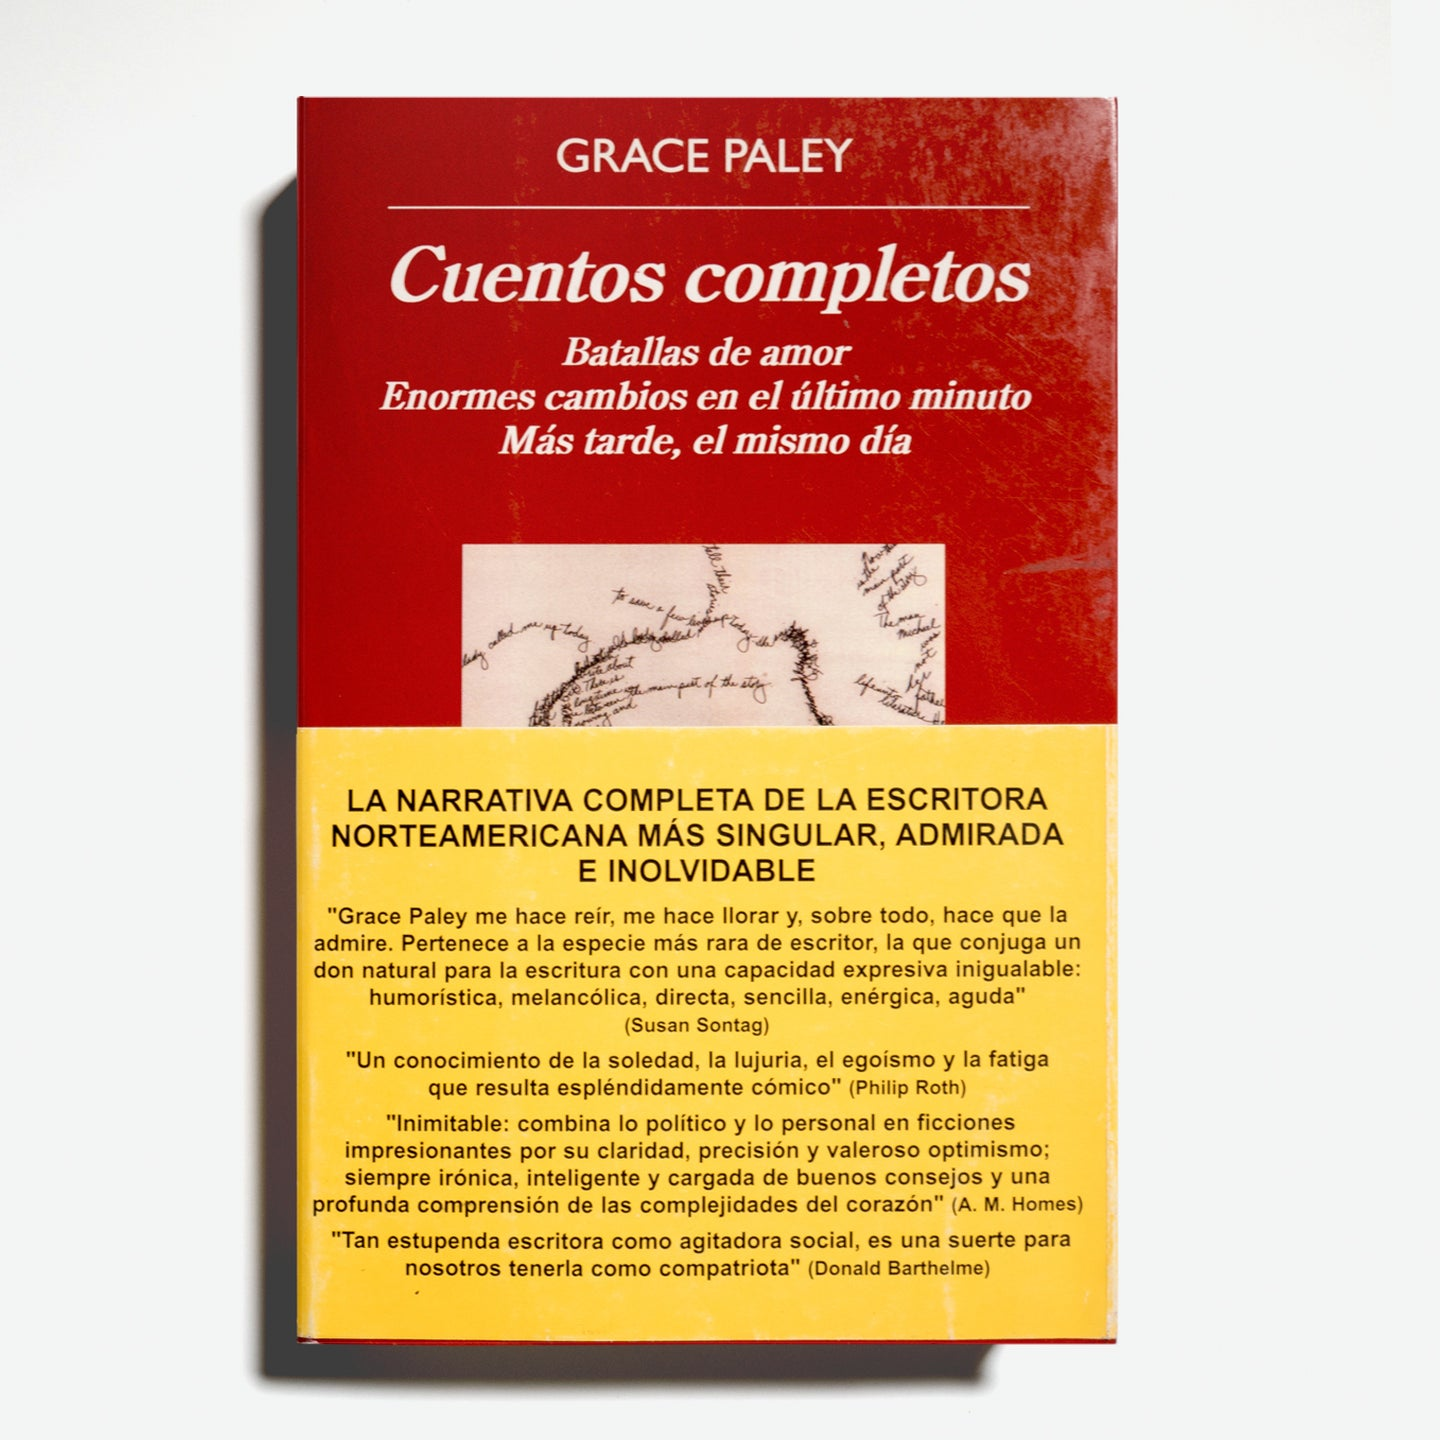 GRACE PALEY | Cuentos completos